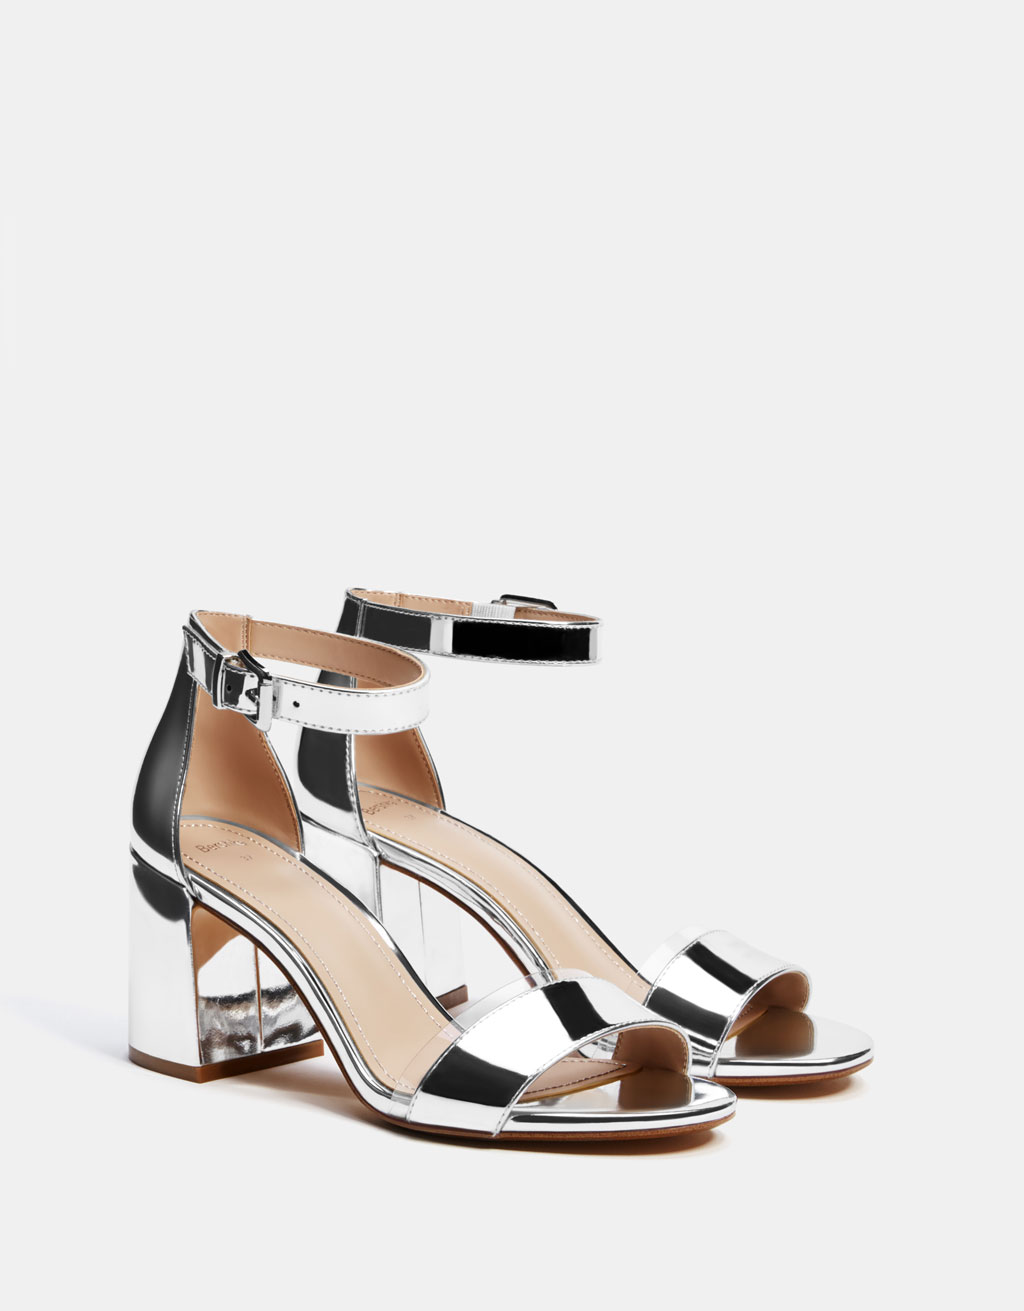 Metallicl high-heel sandals with vinyl detail